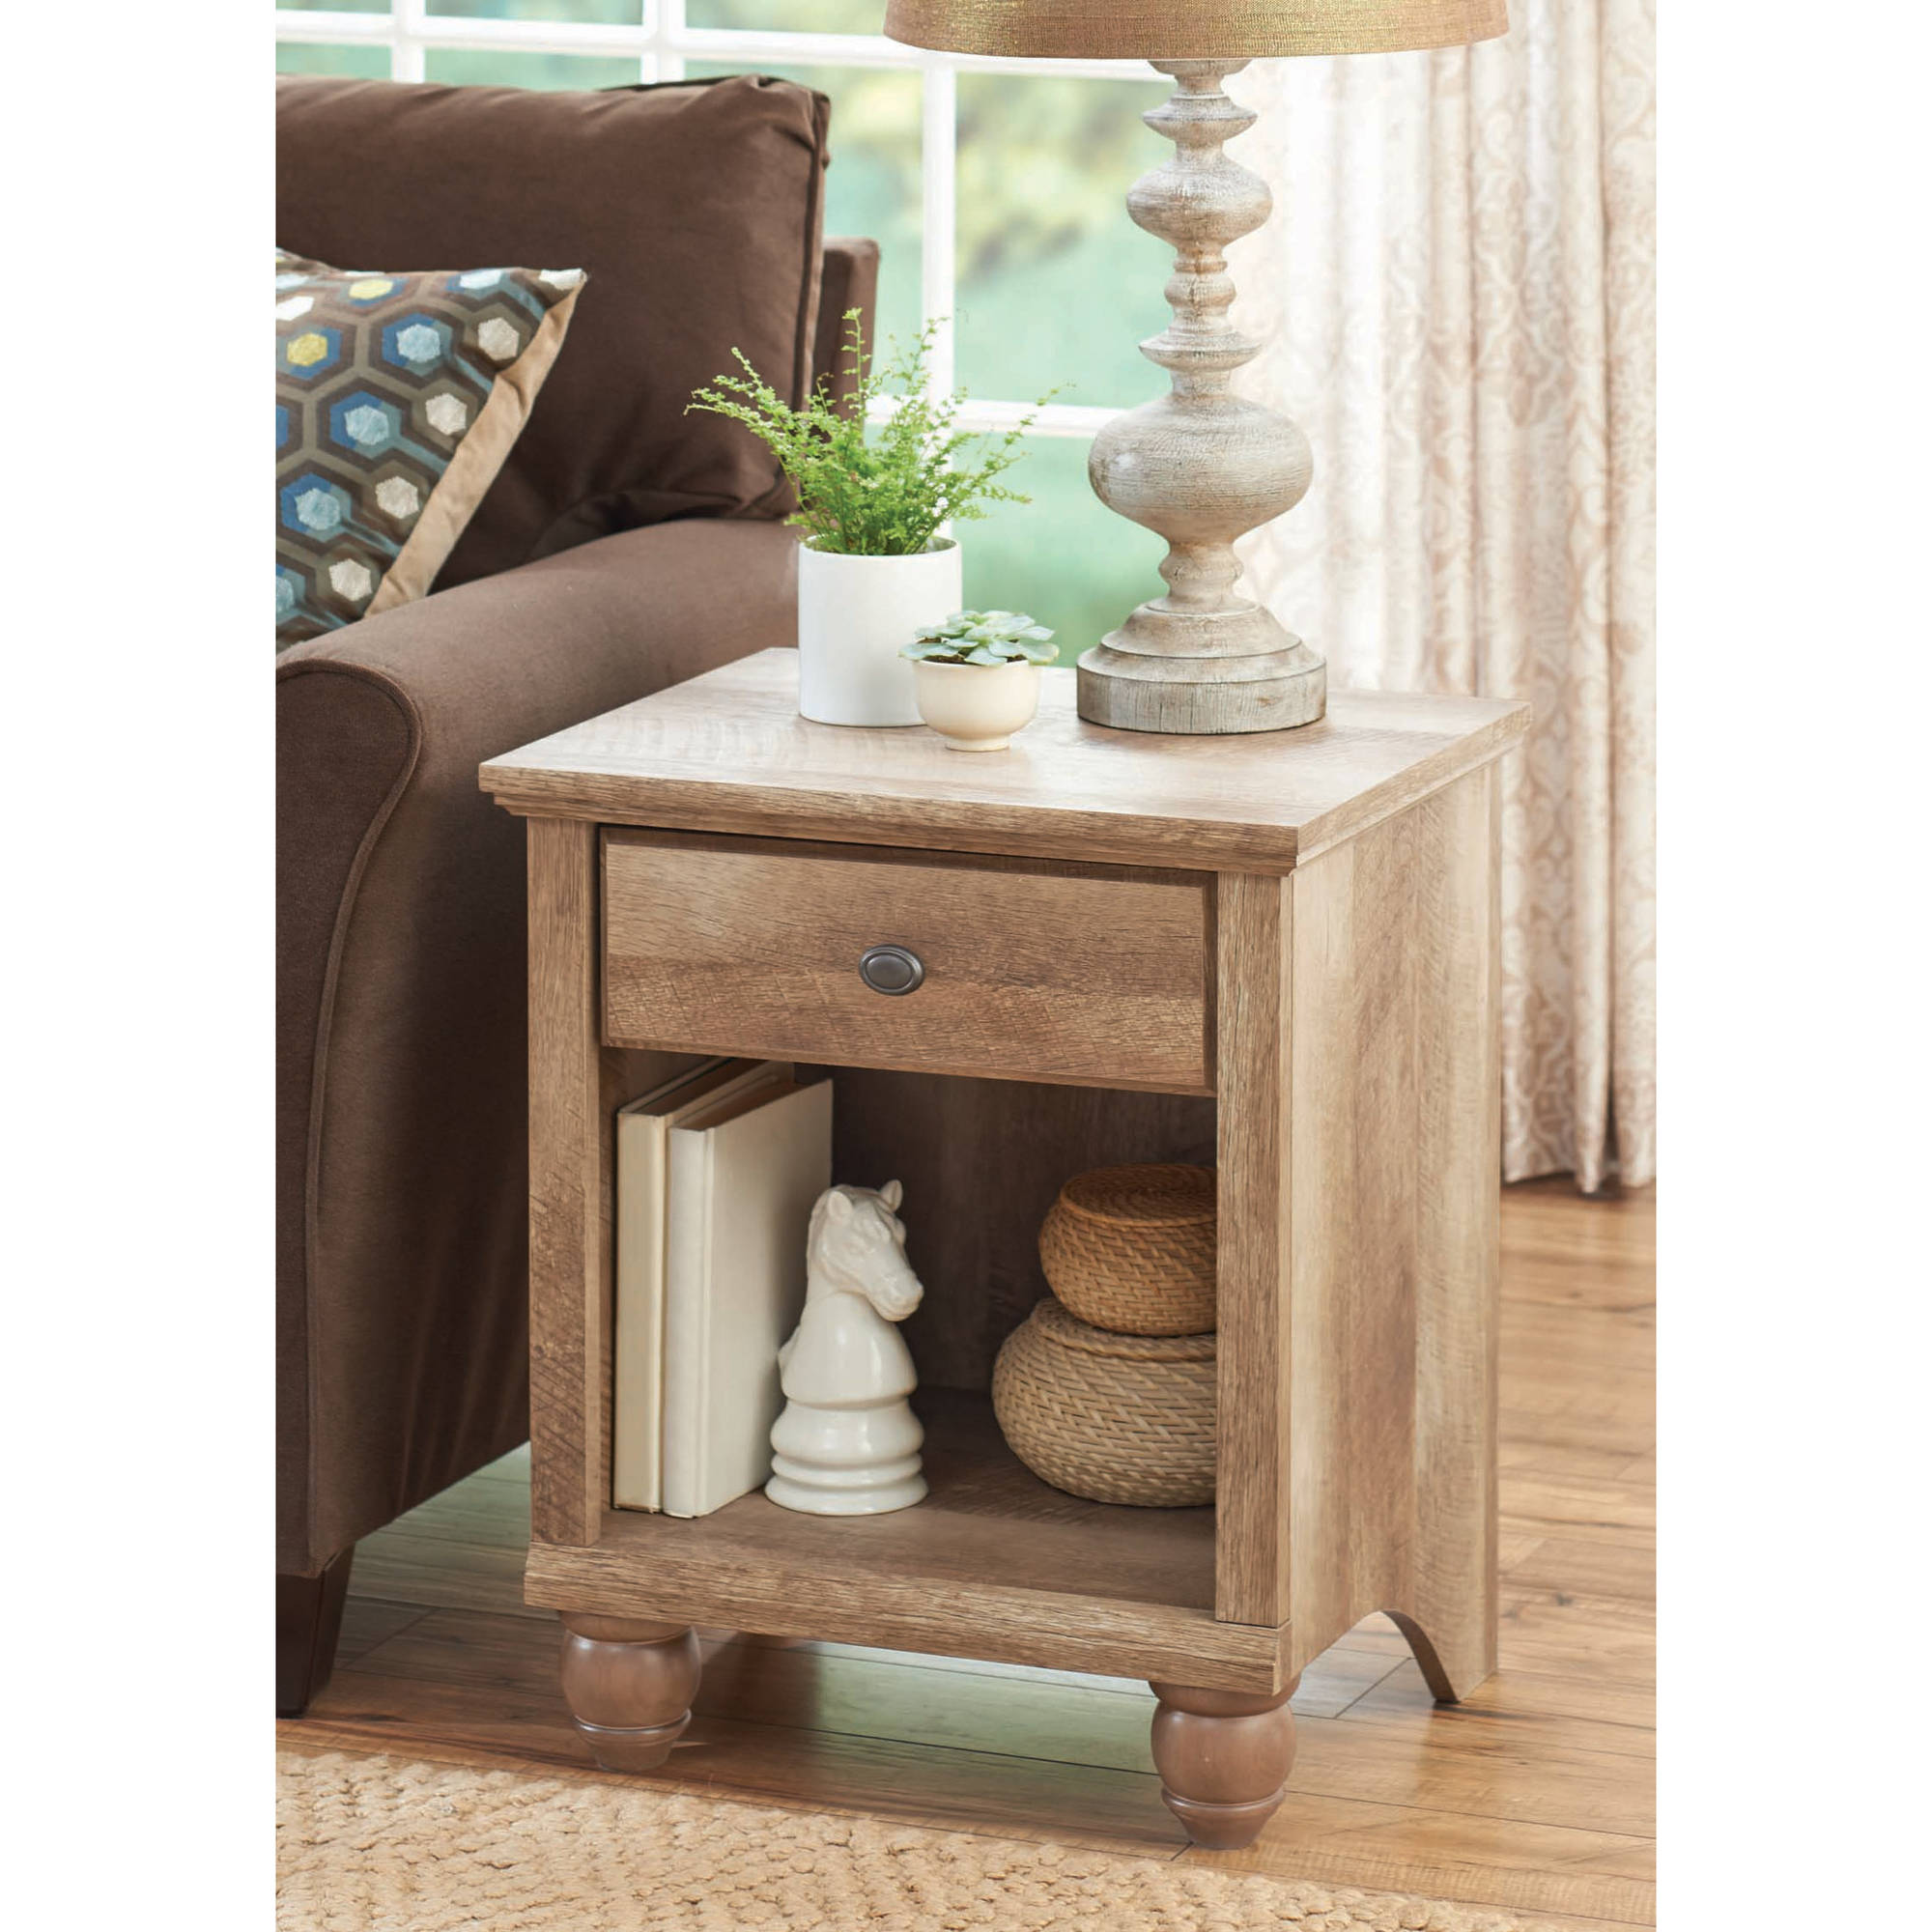 better homes gardens crossmill accent table weathered finish small tables under affordable outdoor furniture end design plans kidney shaped top basket coffee round brass and glass